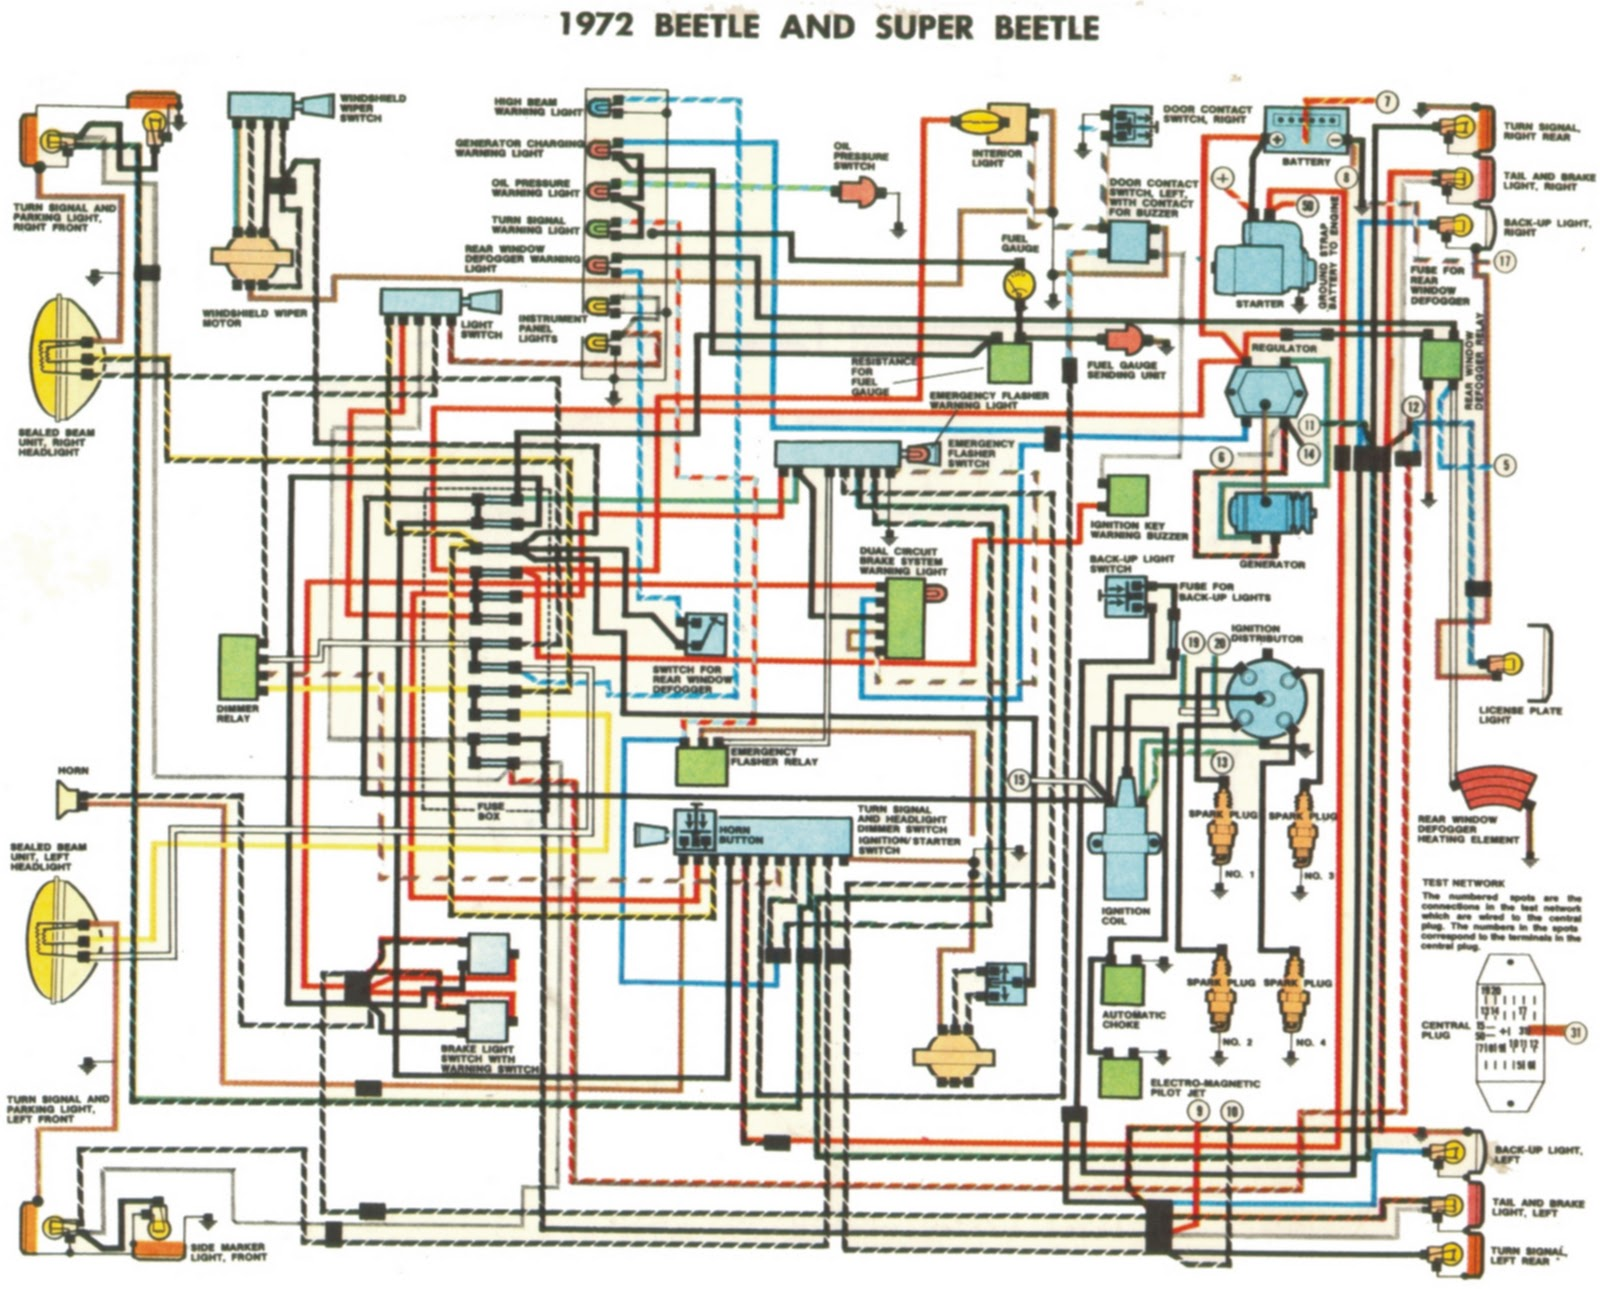 1972 beetle and super beetle wiring diagrams wiring diagram for 1971 vw beetle readingrat net 1971 vw super beetle wiring diagram at bayanpartner.co